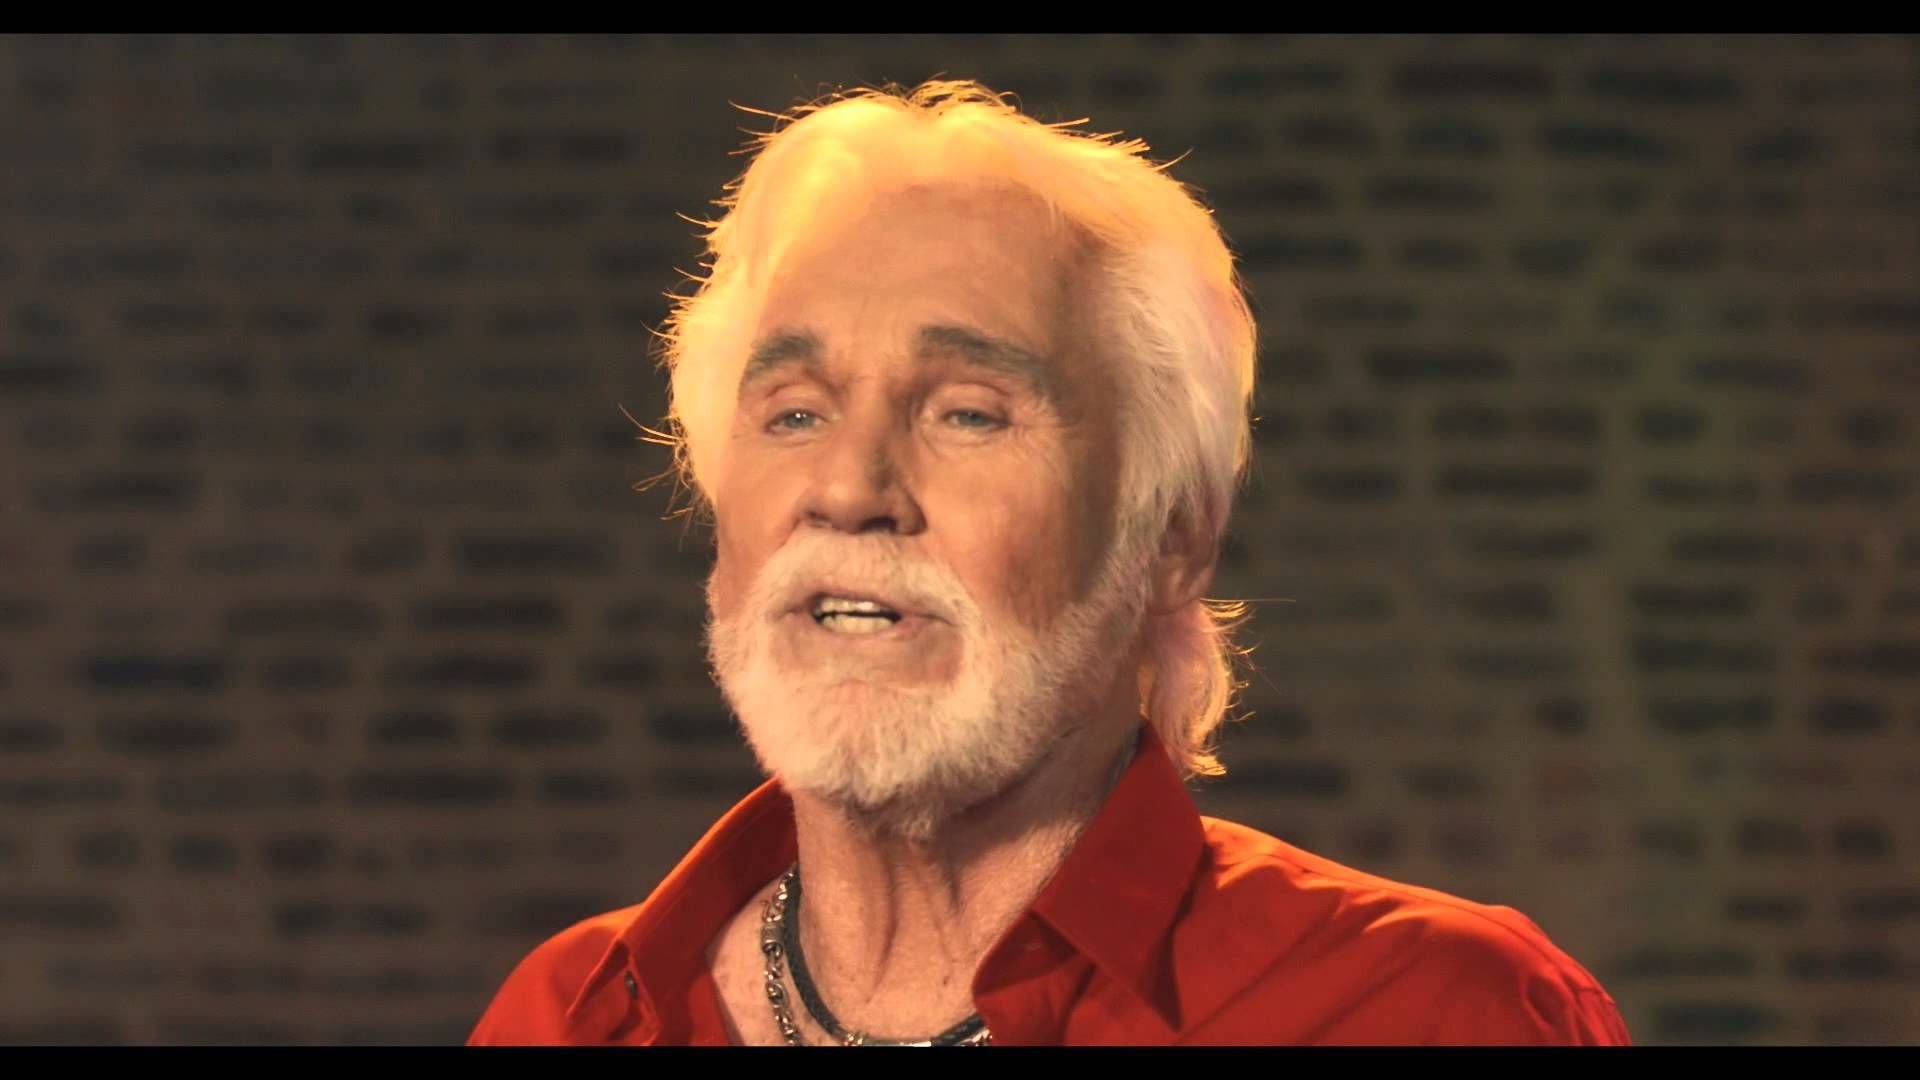 The Gambler himself, Kenny Rogers, y\'all! Check out his new album ...